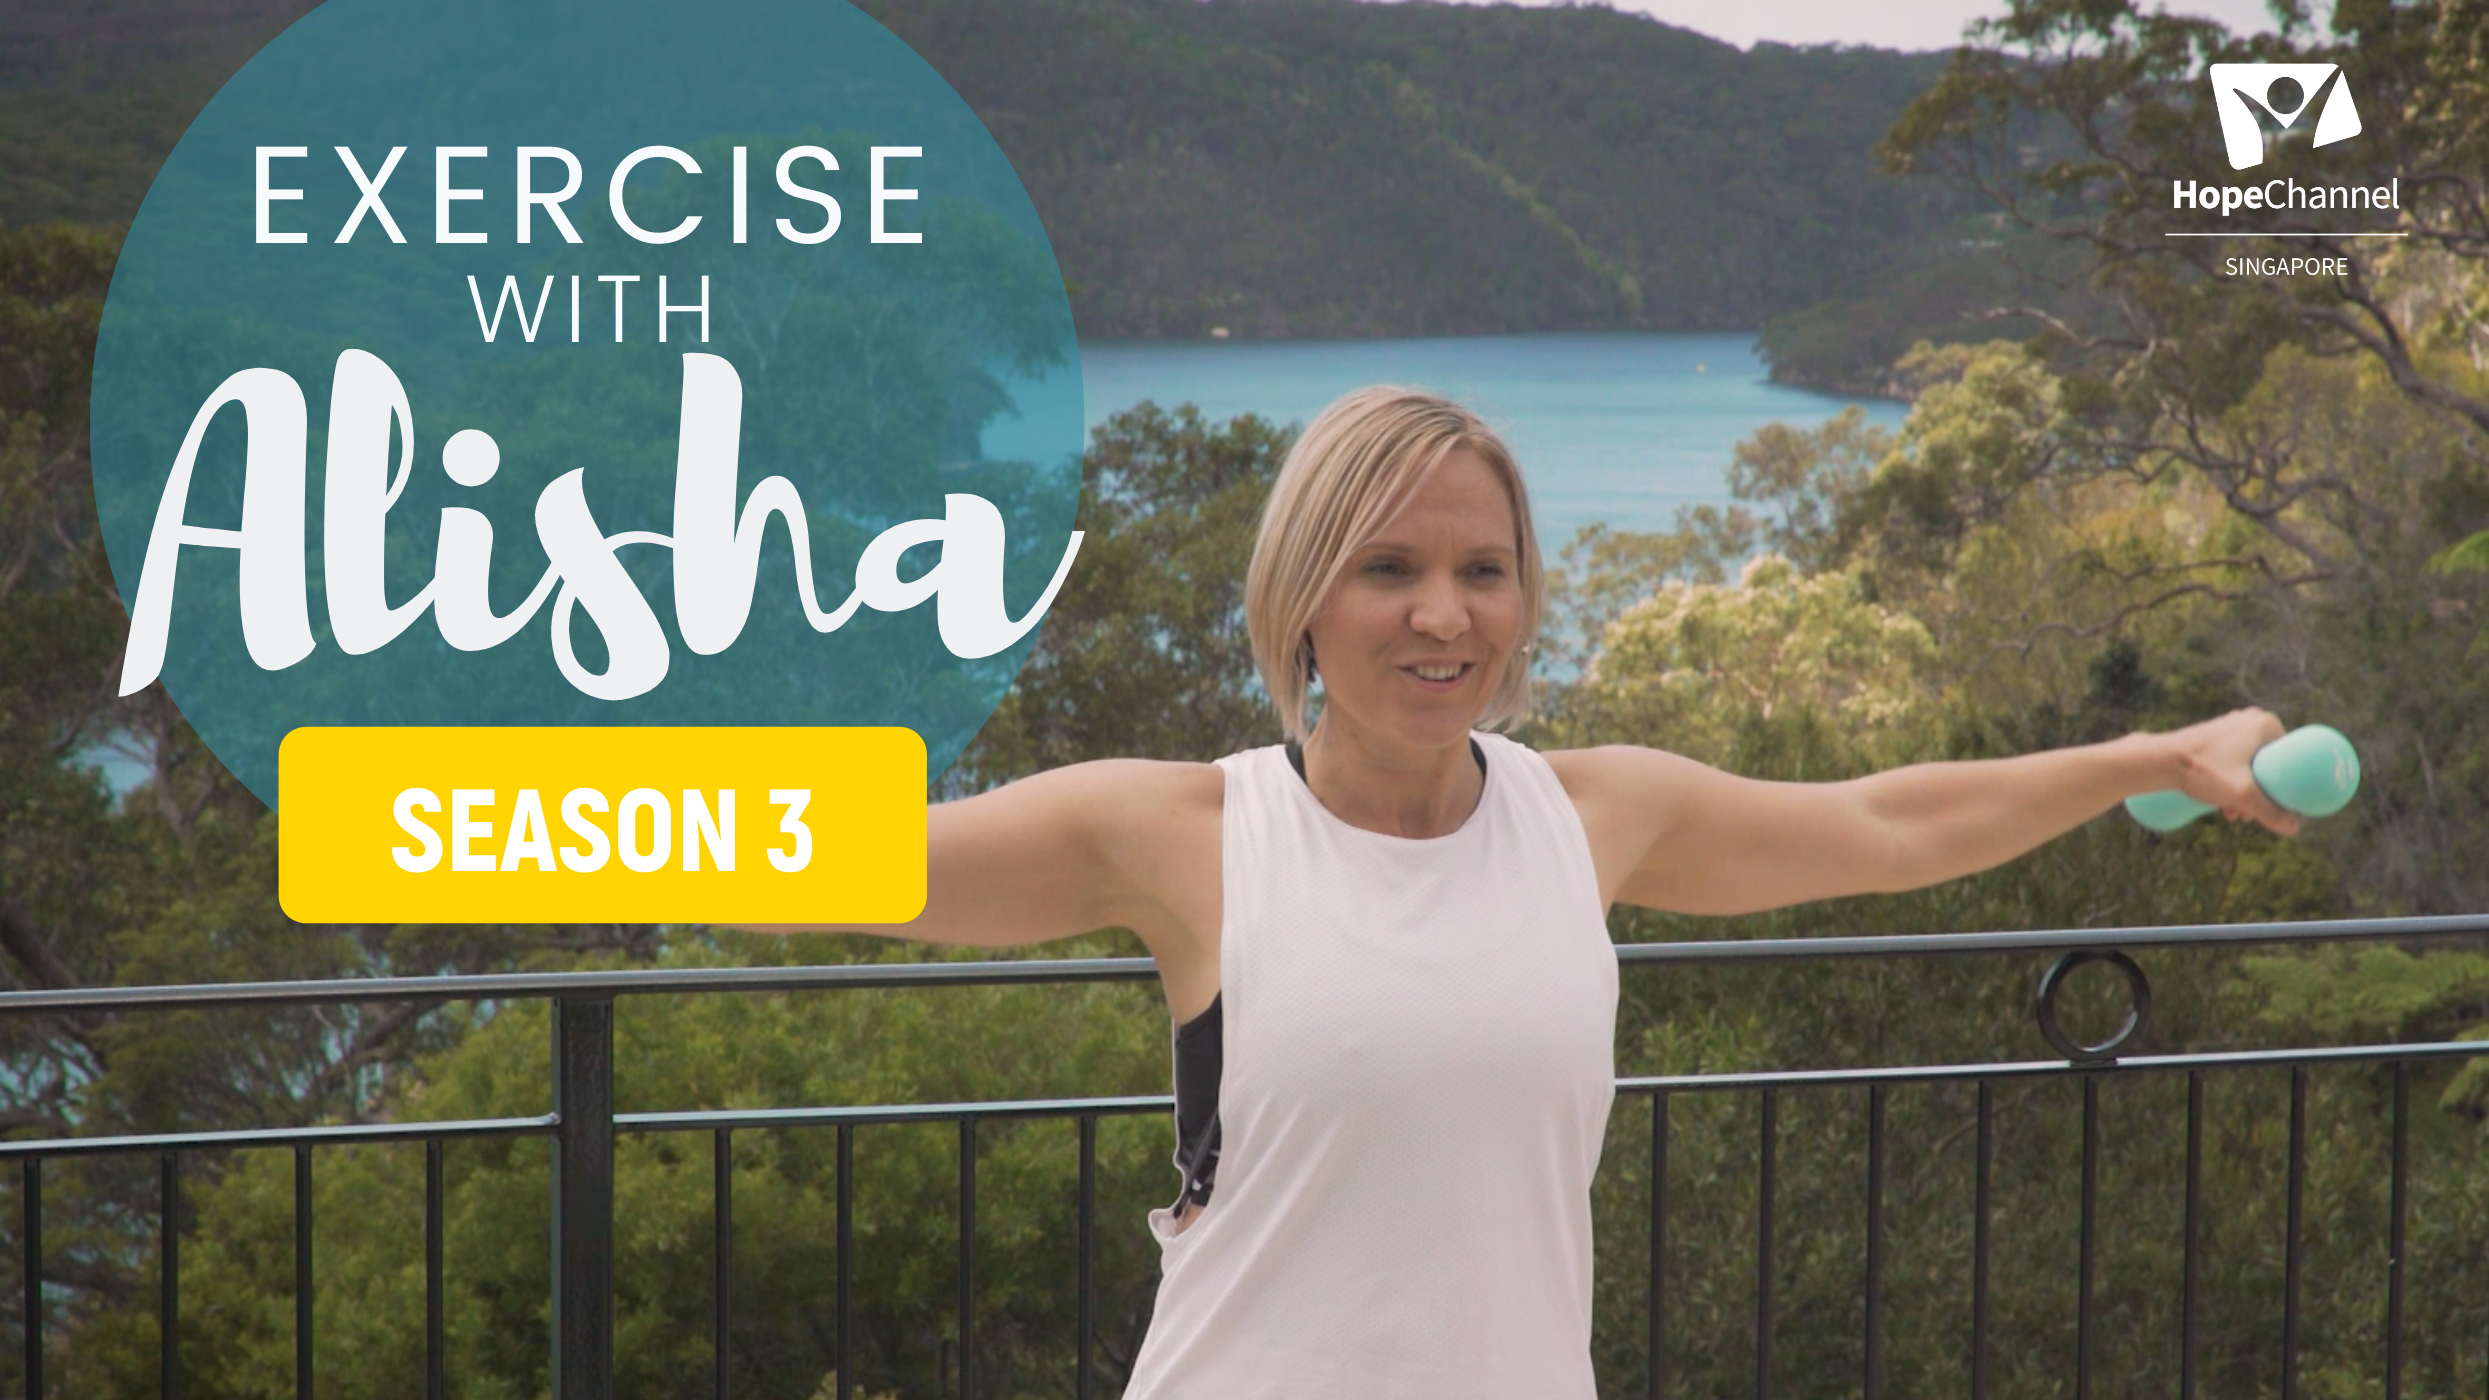 Exercise with Alisha